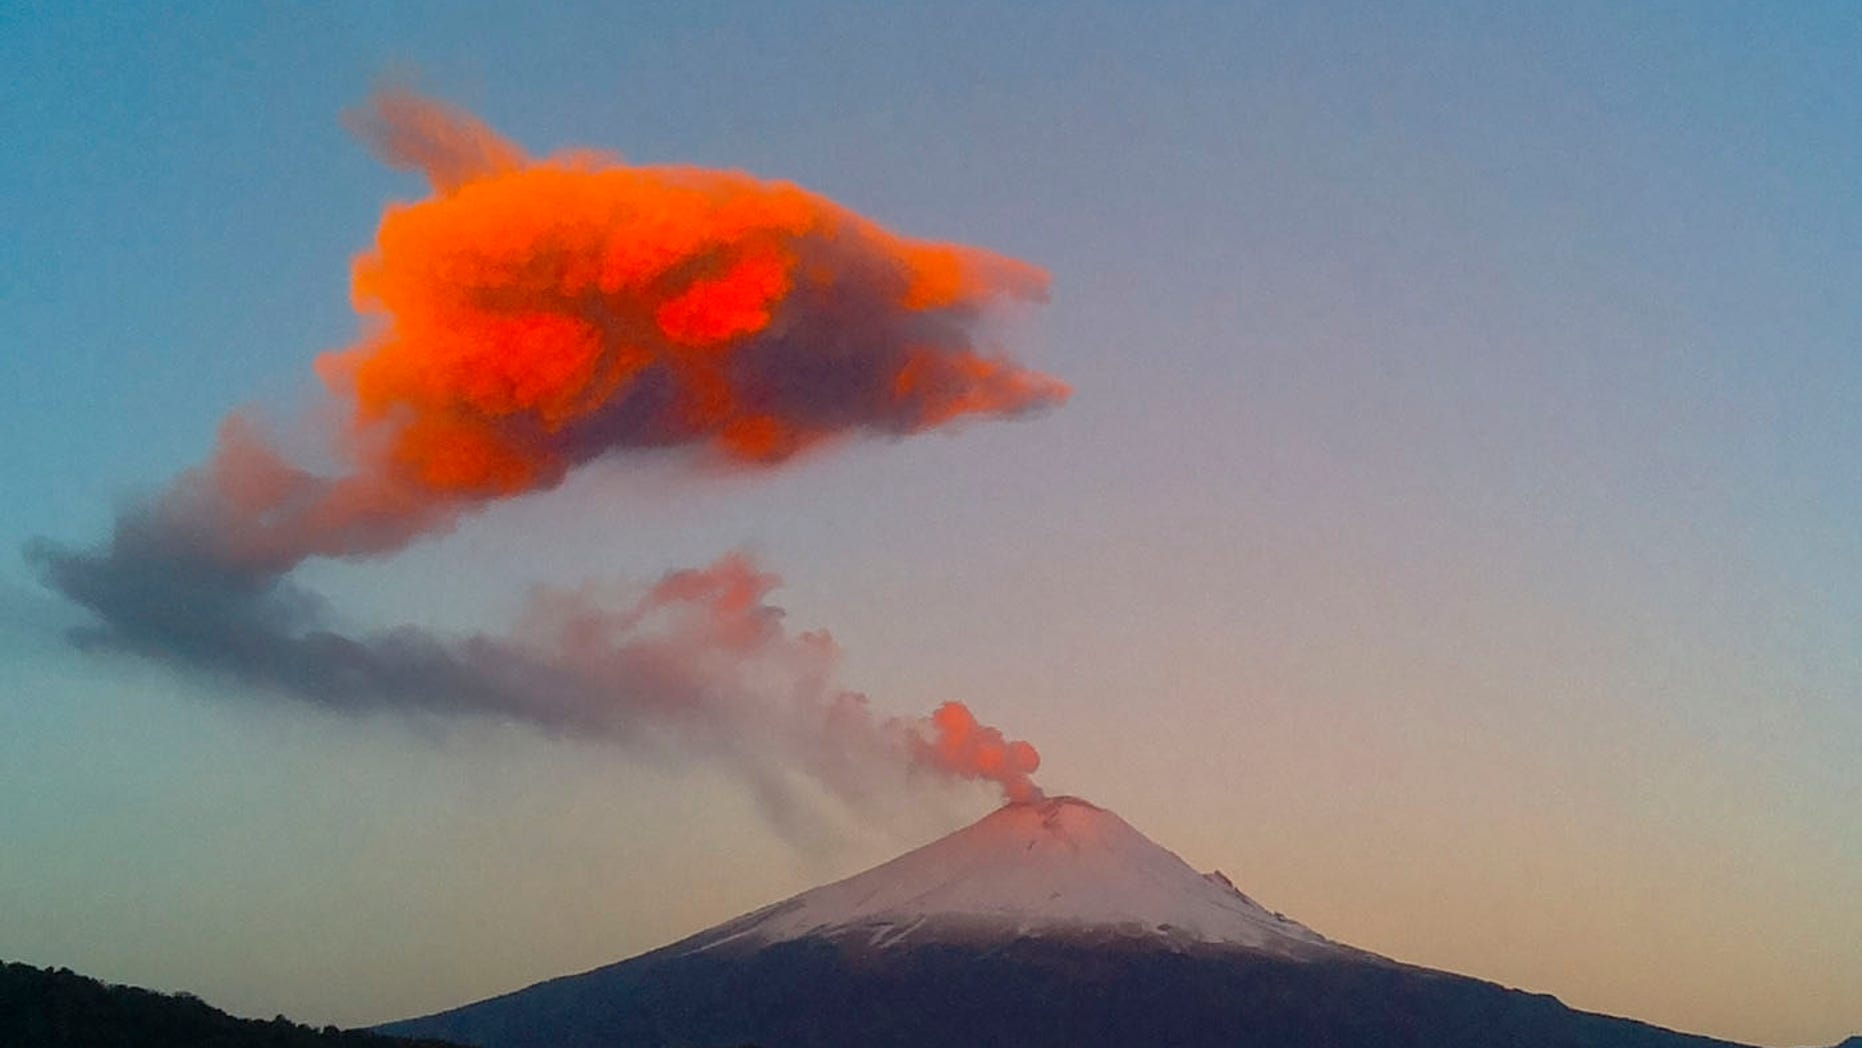 This March 25, 2015 file photo shows a plume of ash and steam rising from the crater of the Popocatepetl volcano, seen from the town of San Nicolas de los Ranchos, Mexico.